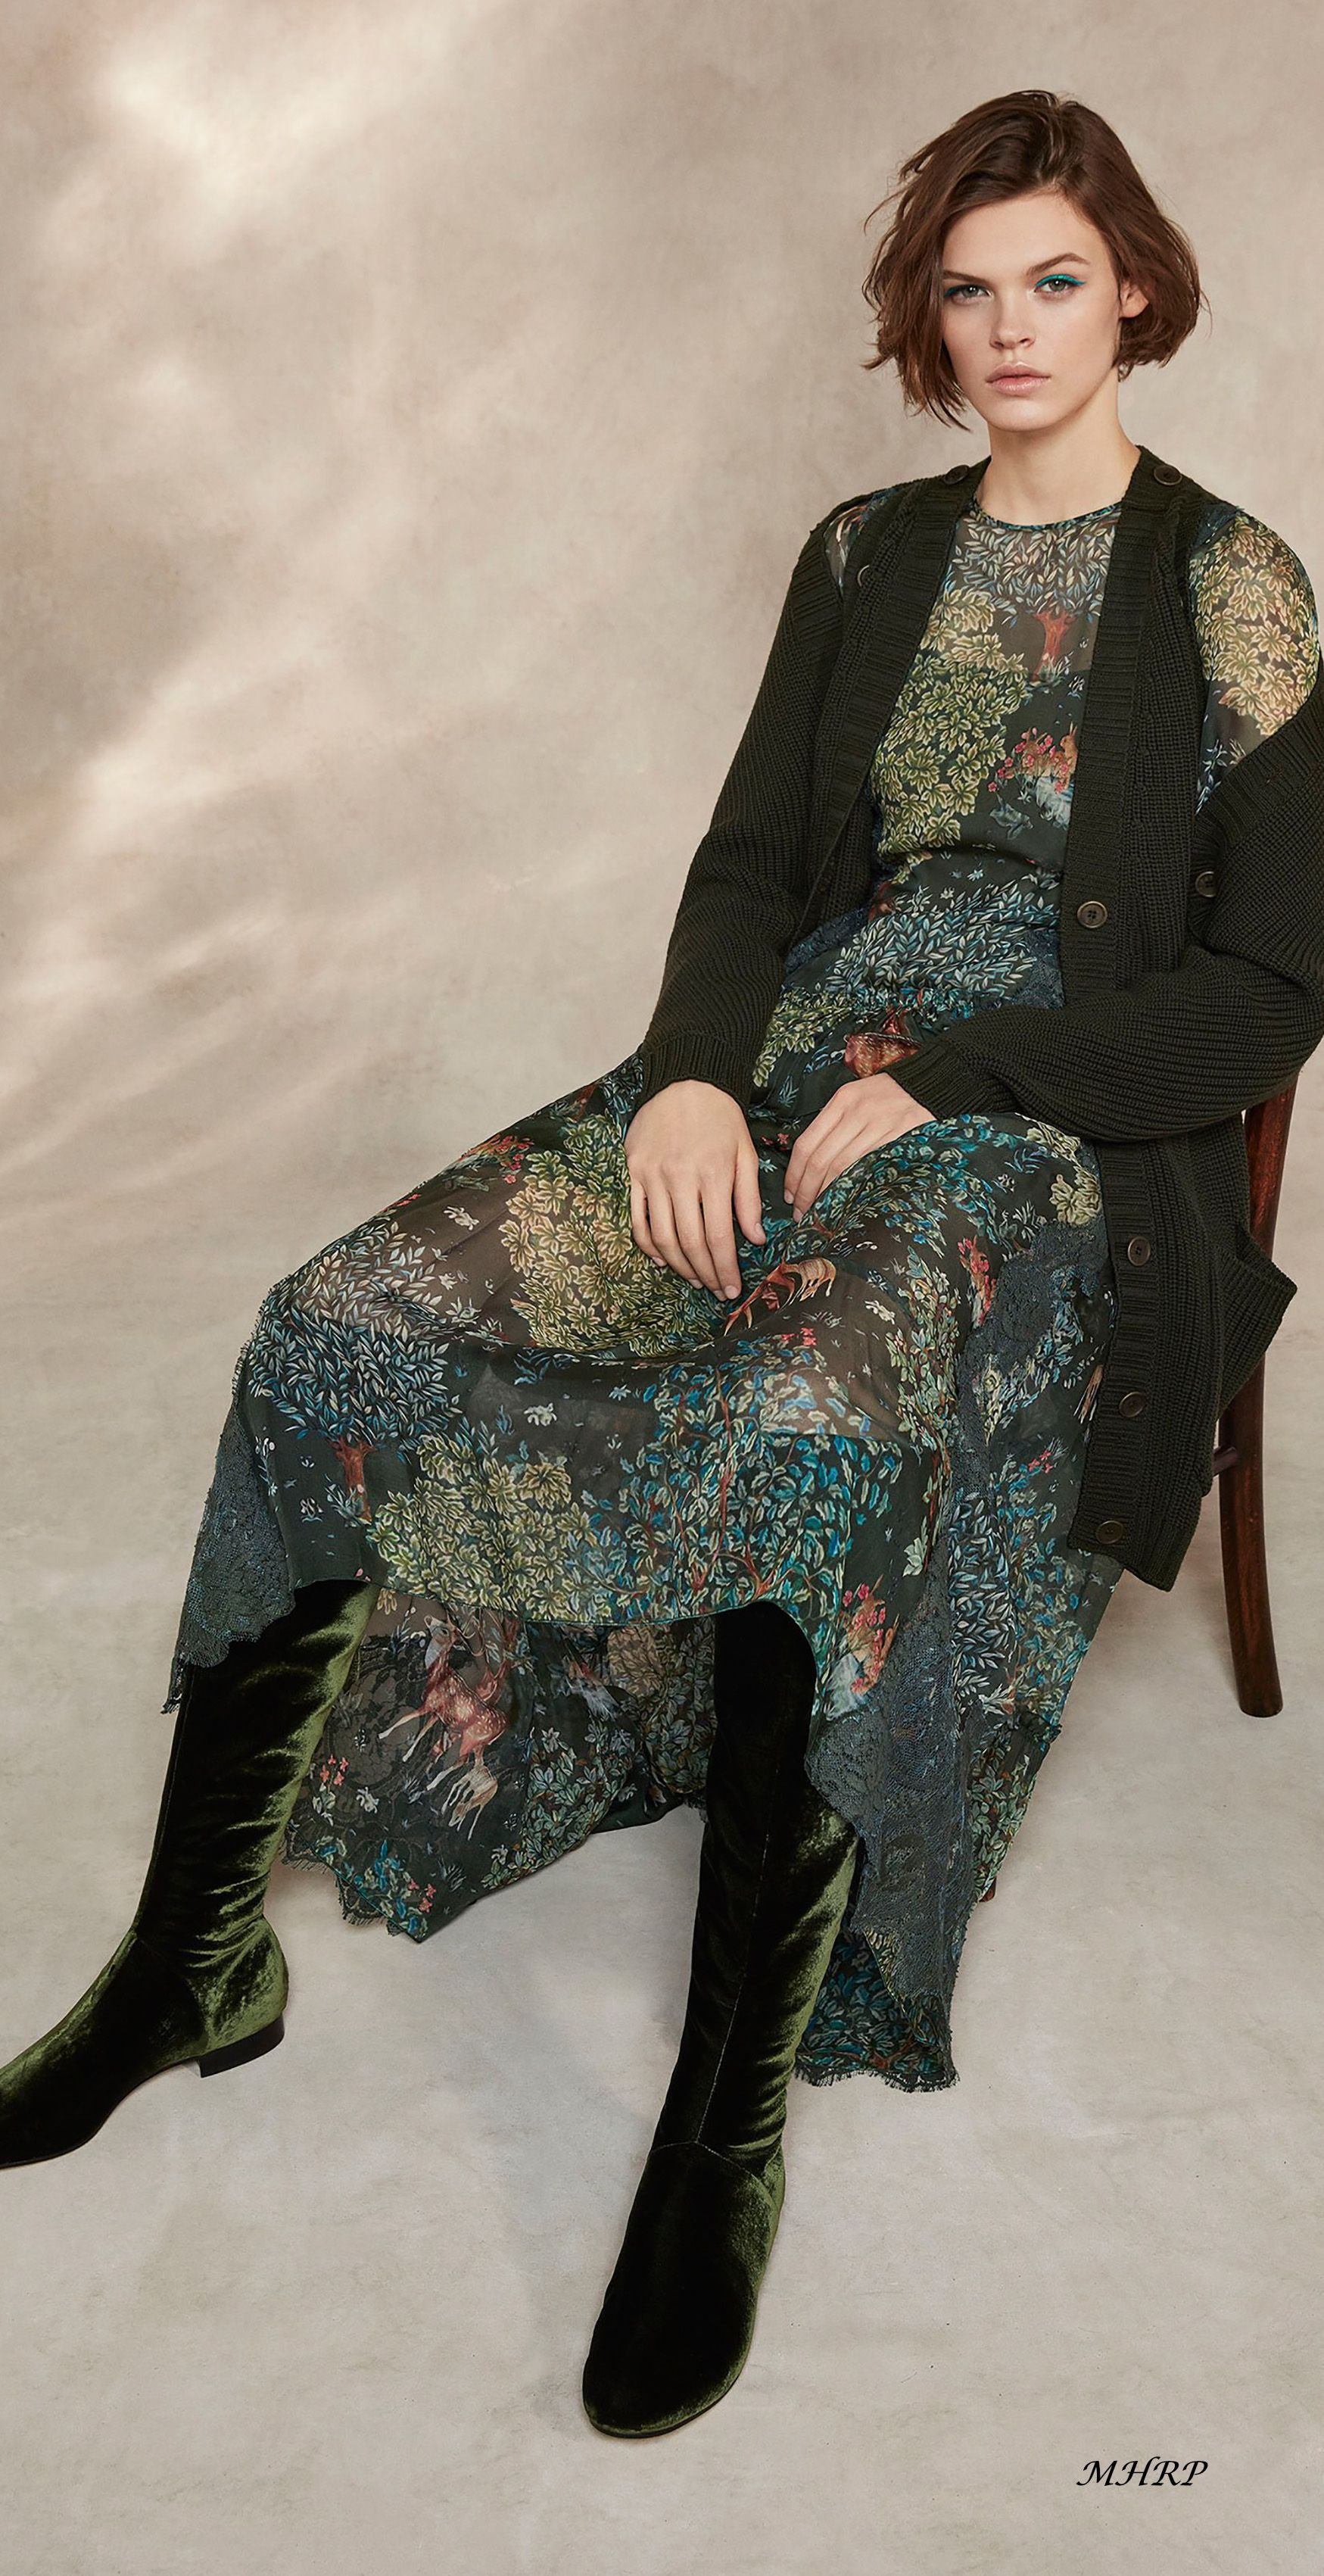 Alberta-Ferretti-Pre-Fall-18_image pinned from vogue.com